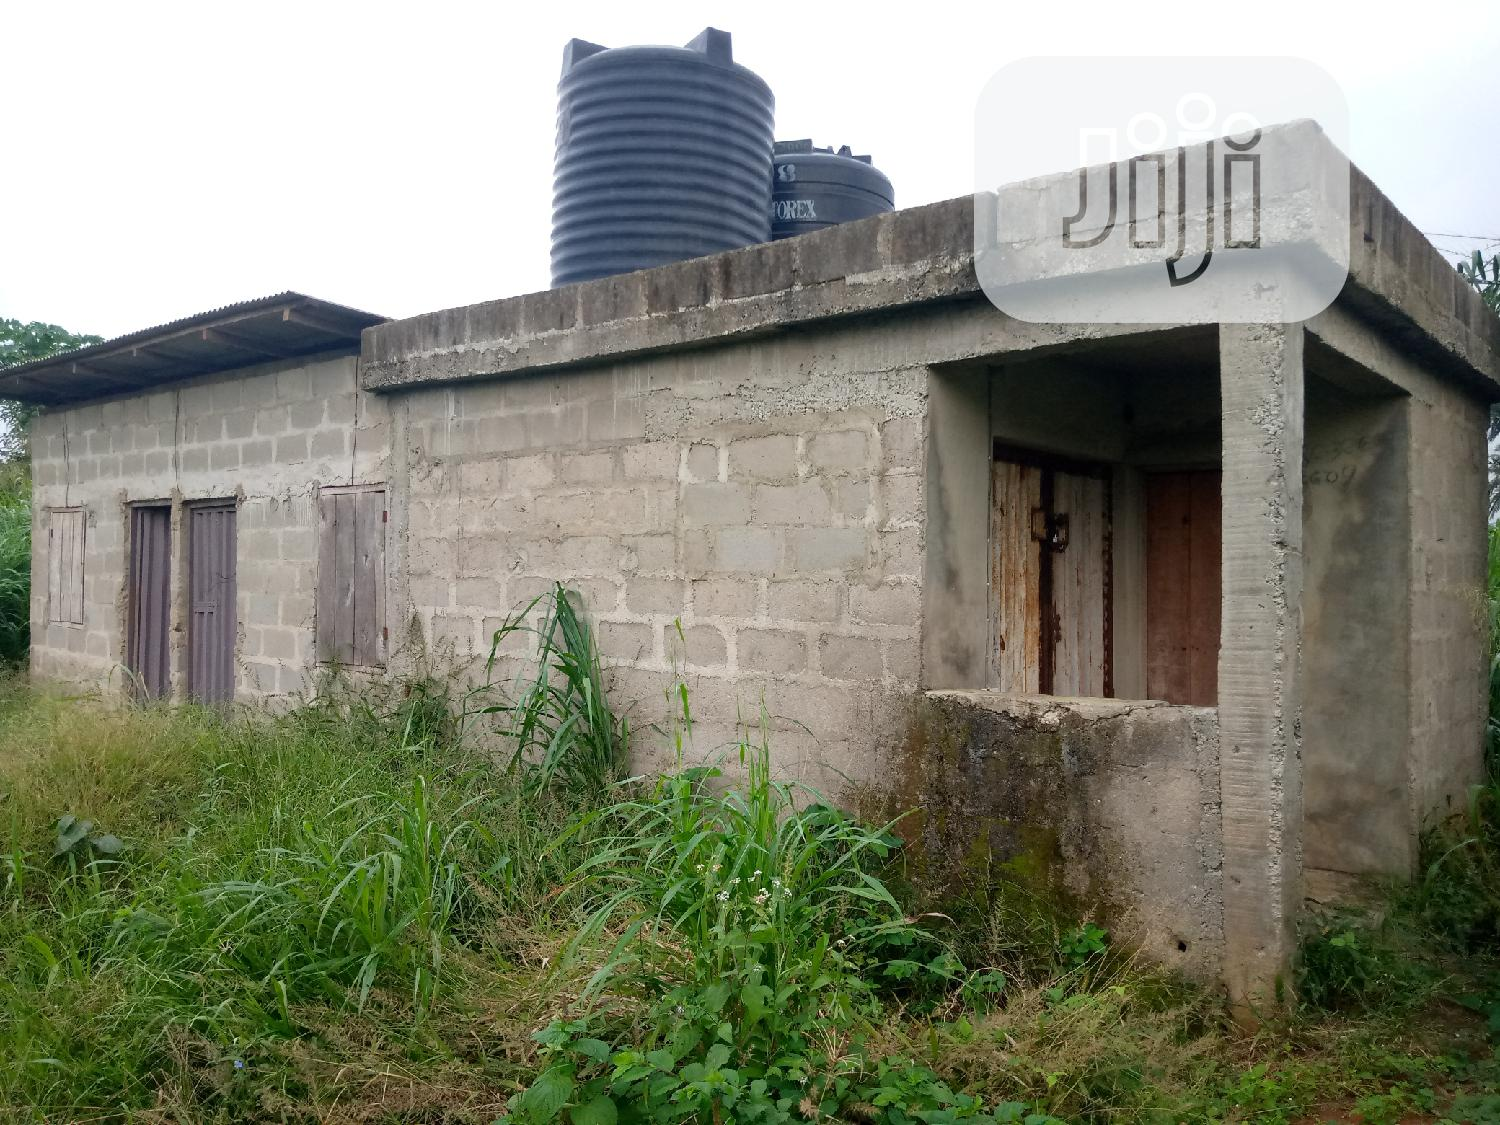 Farm on Two Acres That Fits Multipurpose Conversion for Sale | Farm Machinery & Equipment for sale in Ijebu Ode, Ogun State, Nigeria